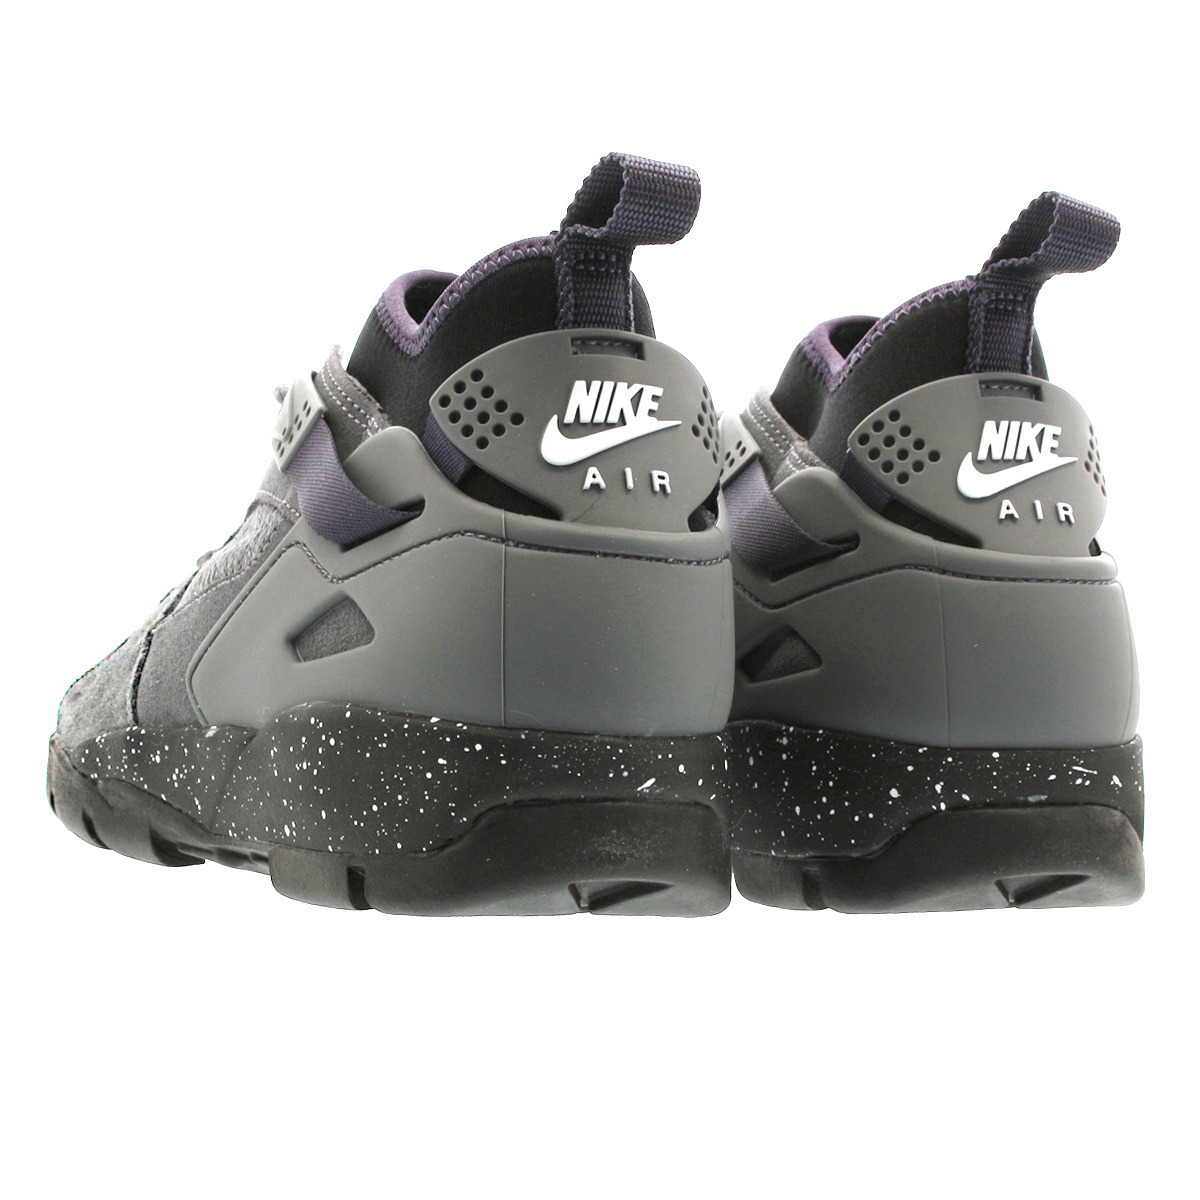 3c4d8b64f97 NIKE ACG REVADERCHI Nike ACG エアリバデルチ FLINT GREY BLACK ABYSS WHITE ar0479-004